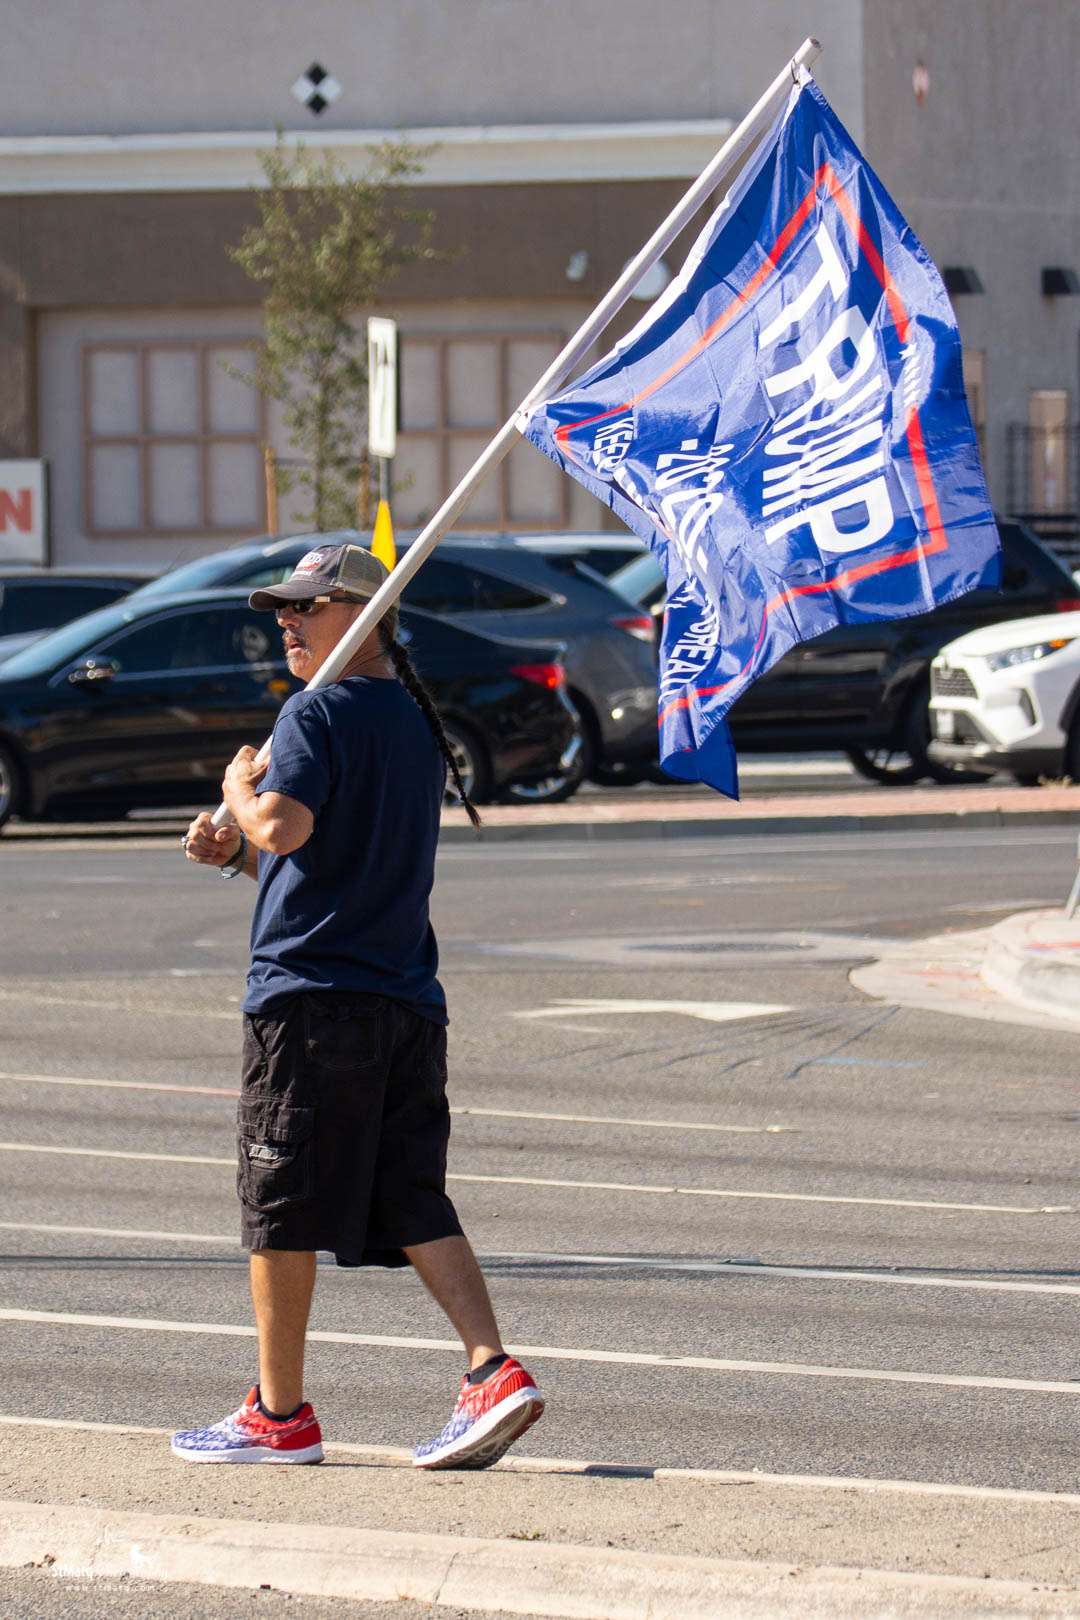 Fernando Castillo walks in the center divider of Imperial Highway with a Trump flag on Sunday, October 18, 2020 at a Rally in support of president Trump in La Habra, California.